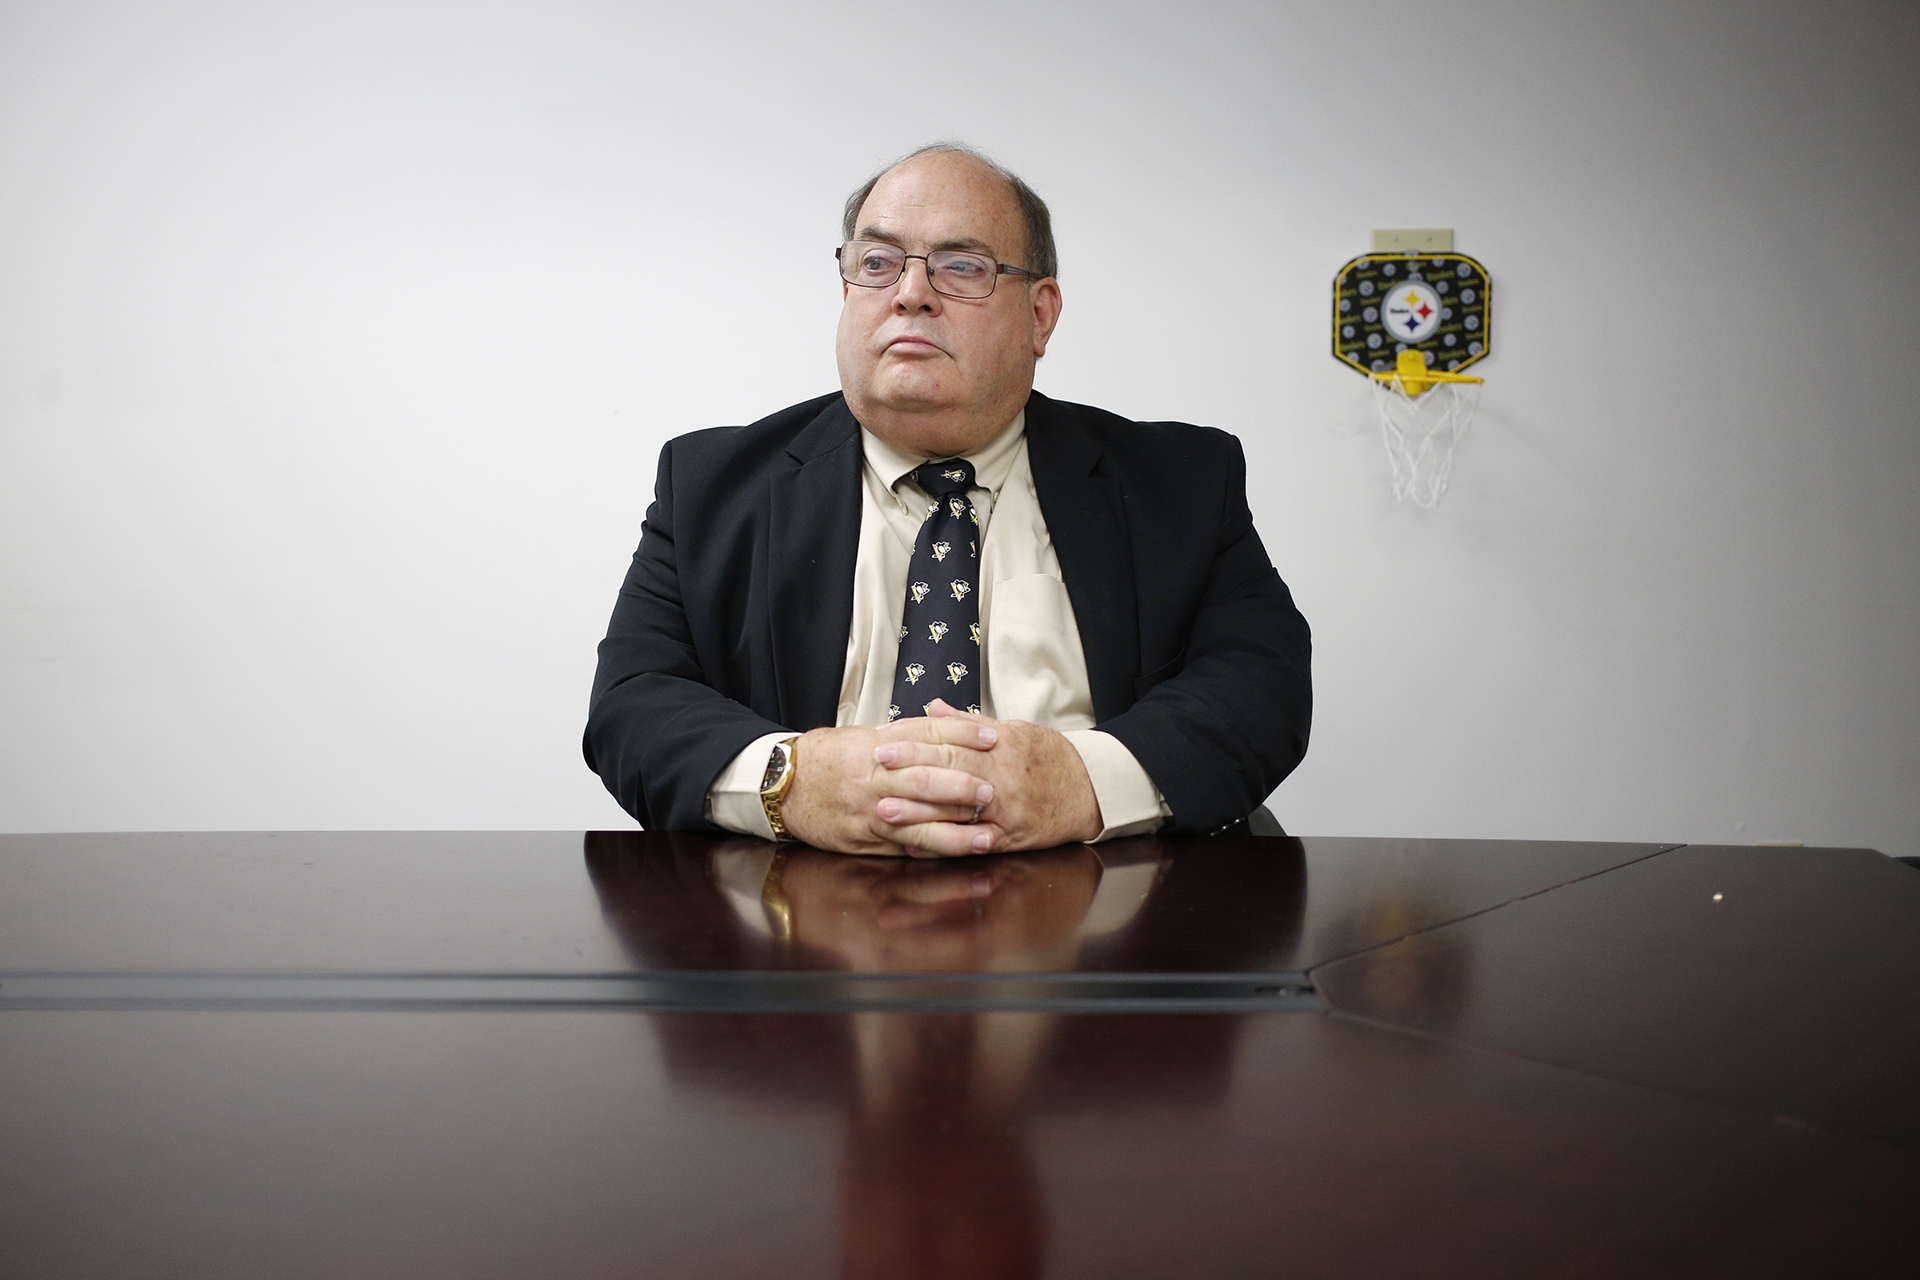 Hancock County Prosecutor Jim Davis sits for a portrait on June 22, 2018 in New Cumberland, W.Va.